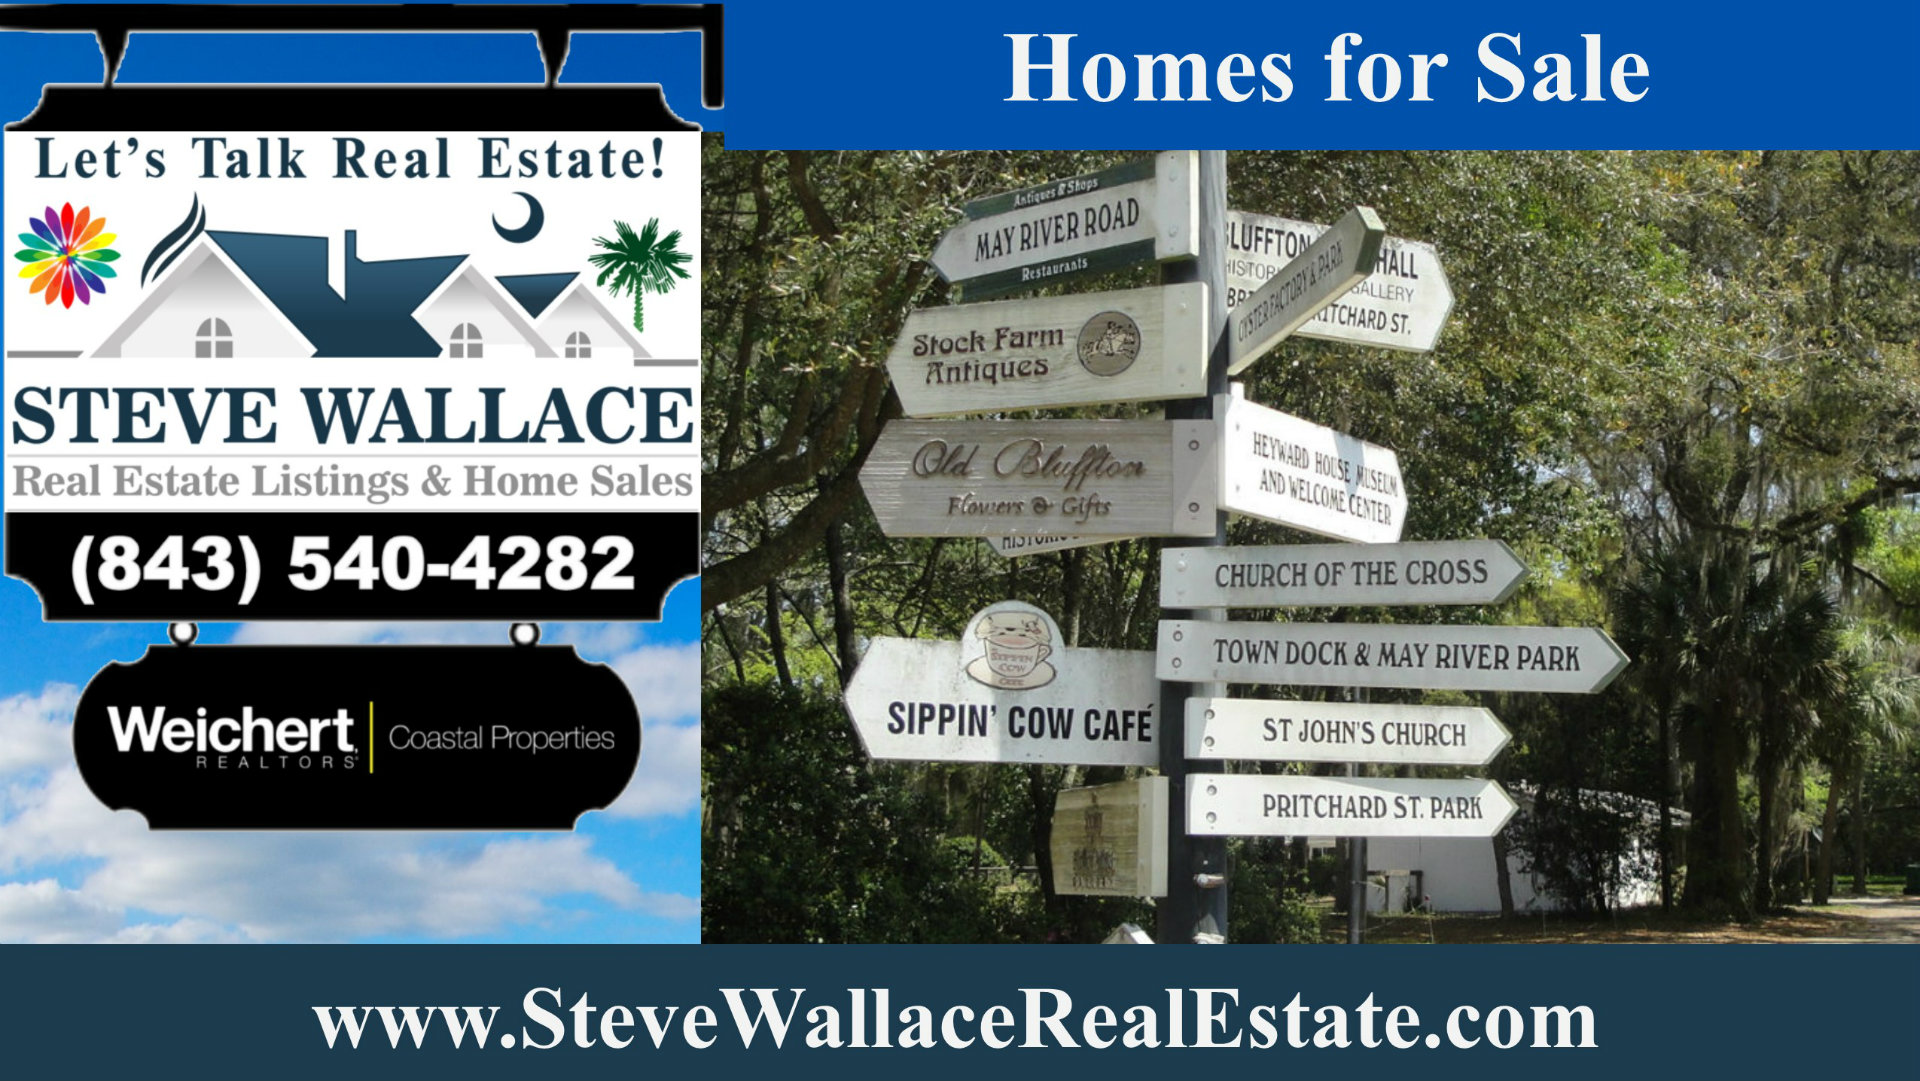 steve wallace sells bluffton house, villas, new homes, real estate